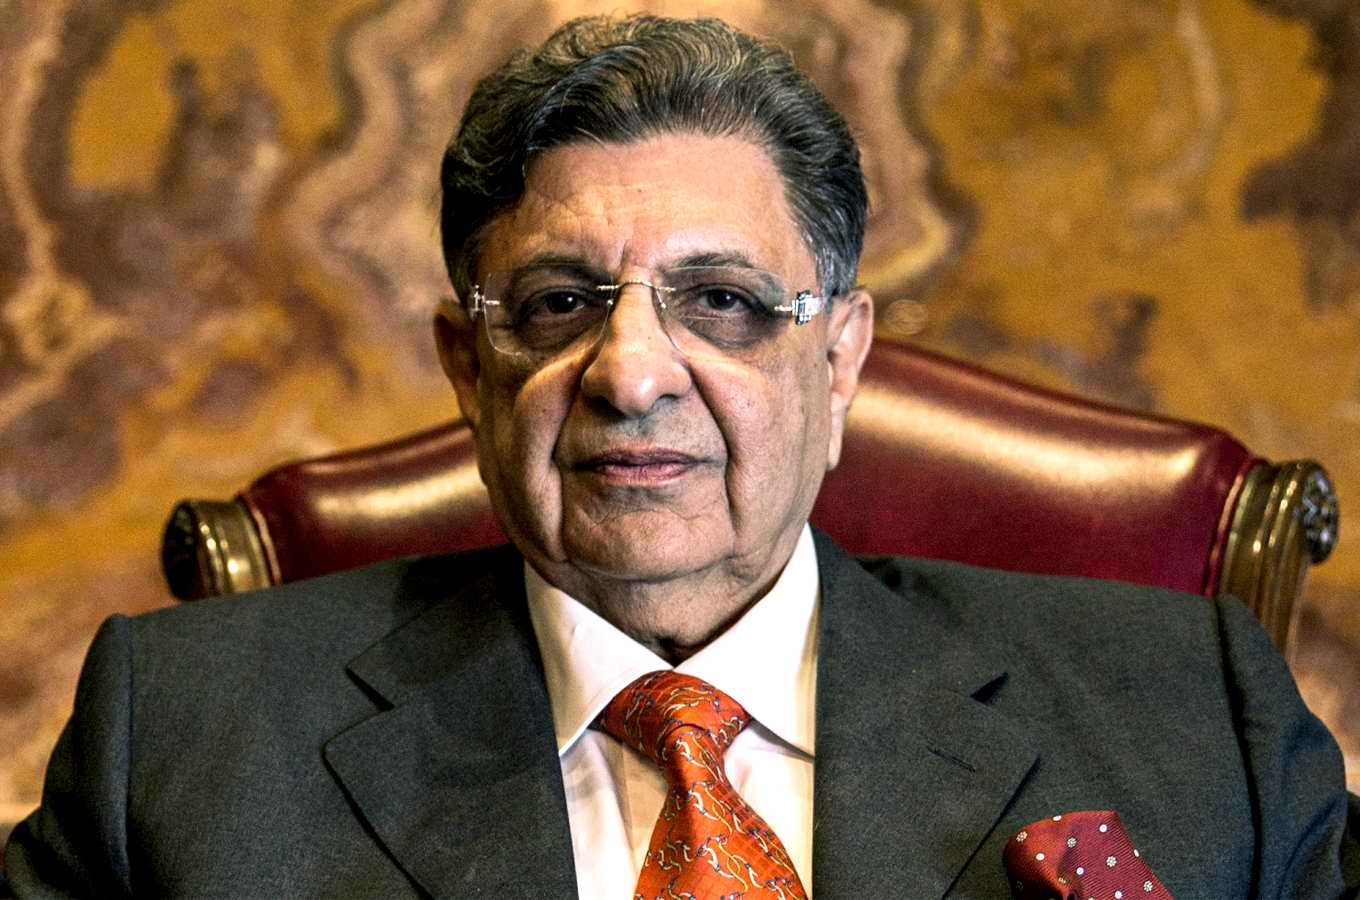 Cyrus-Poonawalla's image - Richest Person in India